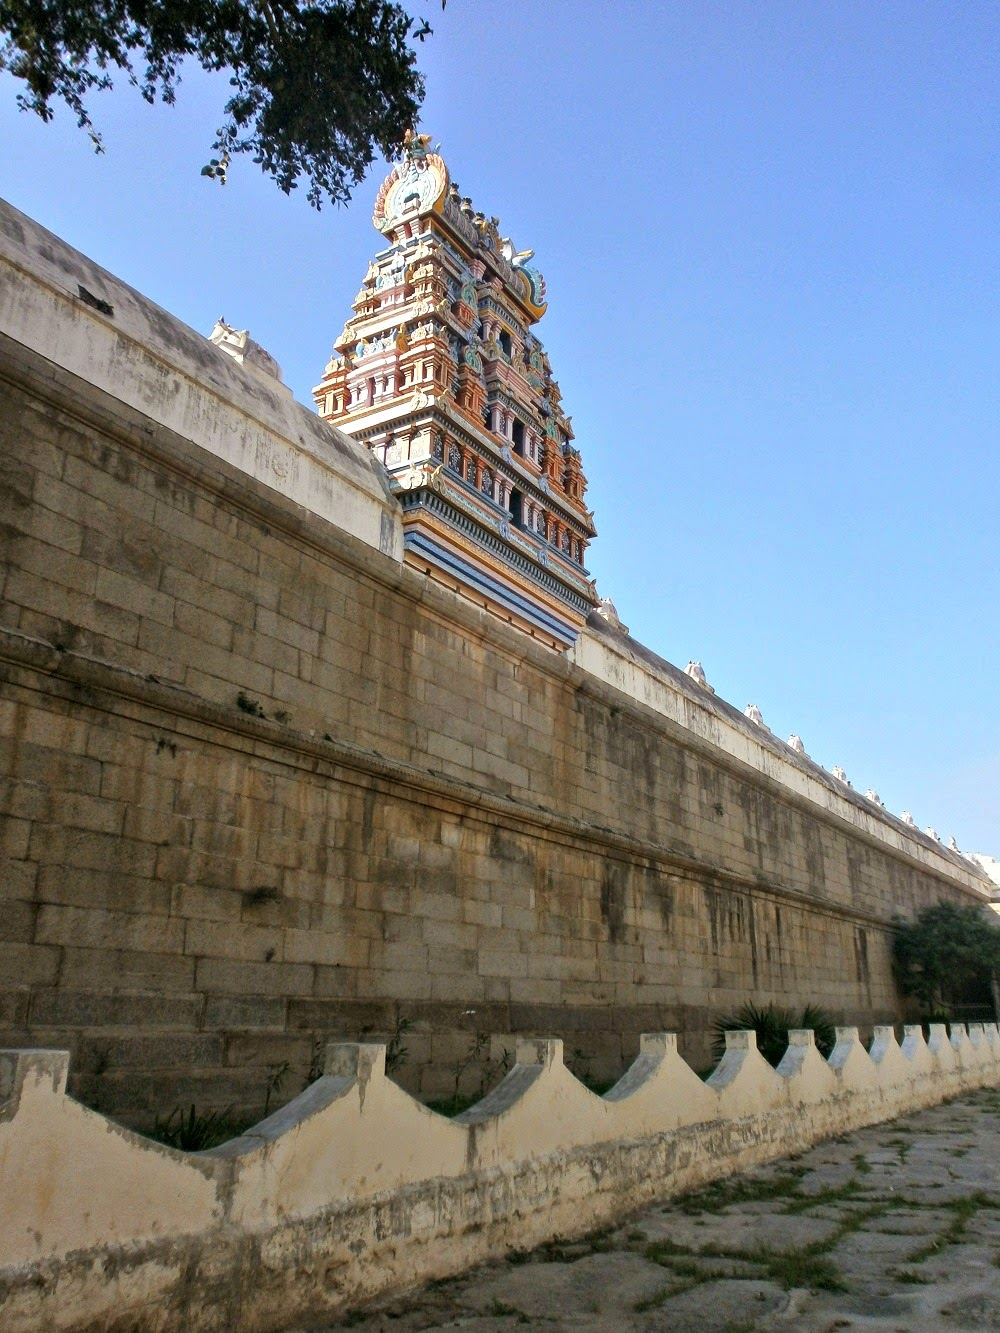 Sri Margabandeeswarar temple, Virungipuram, Temple, Vellore, Shiva Temple, Temples in India, Indian tradition,